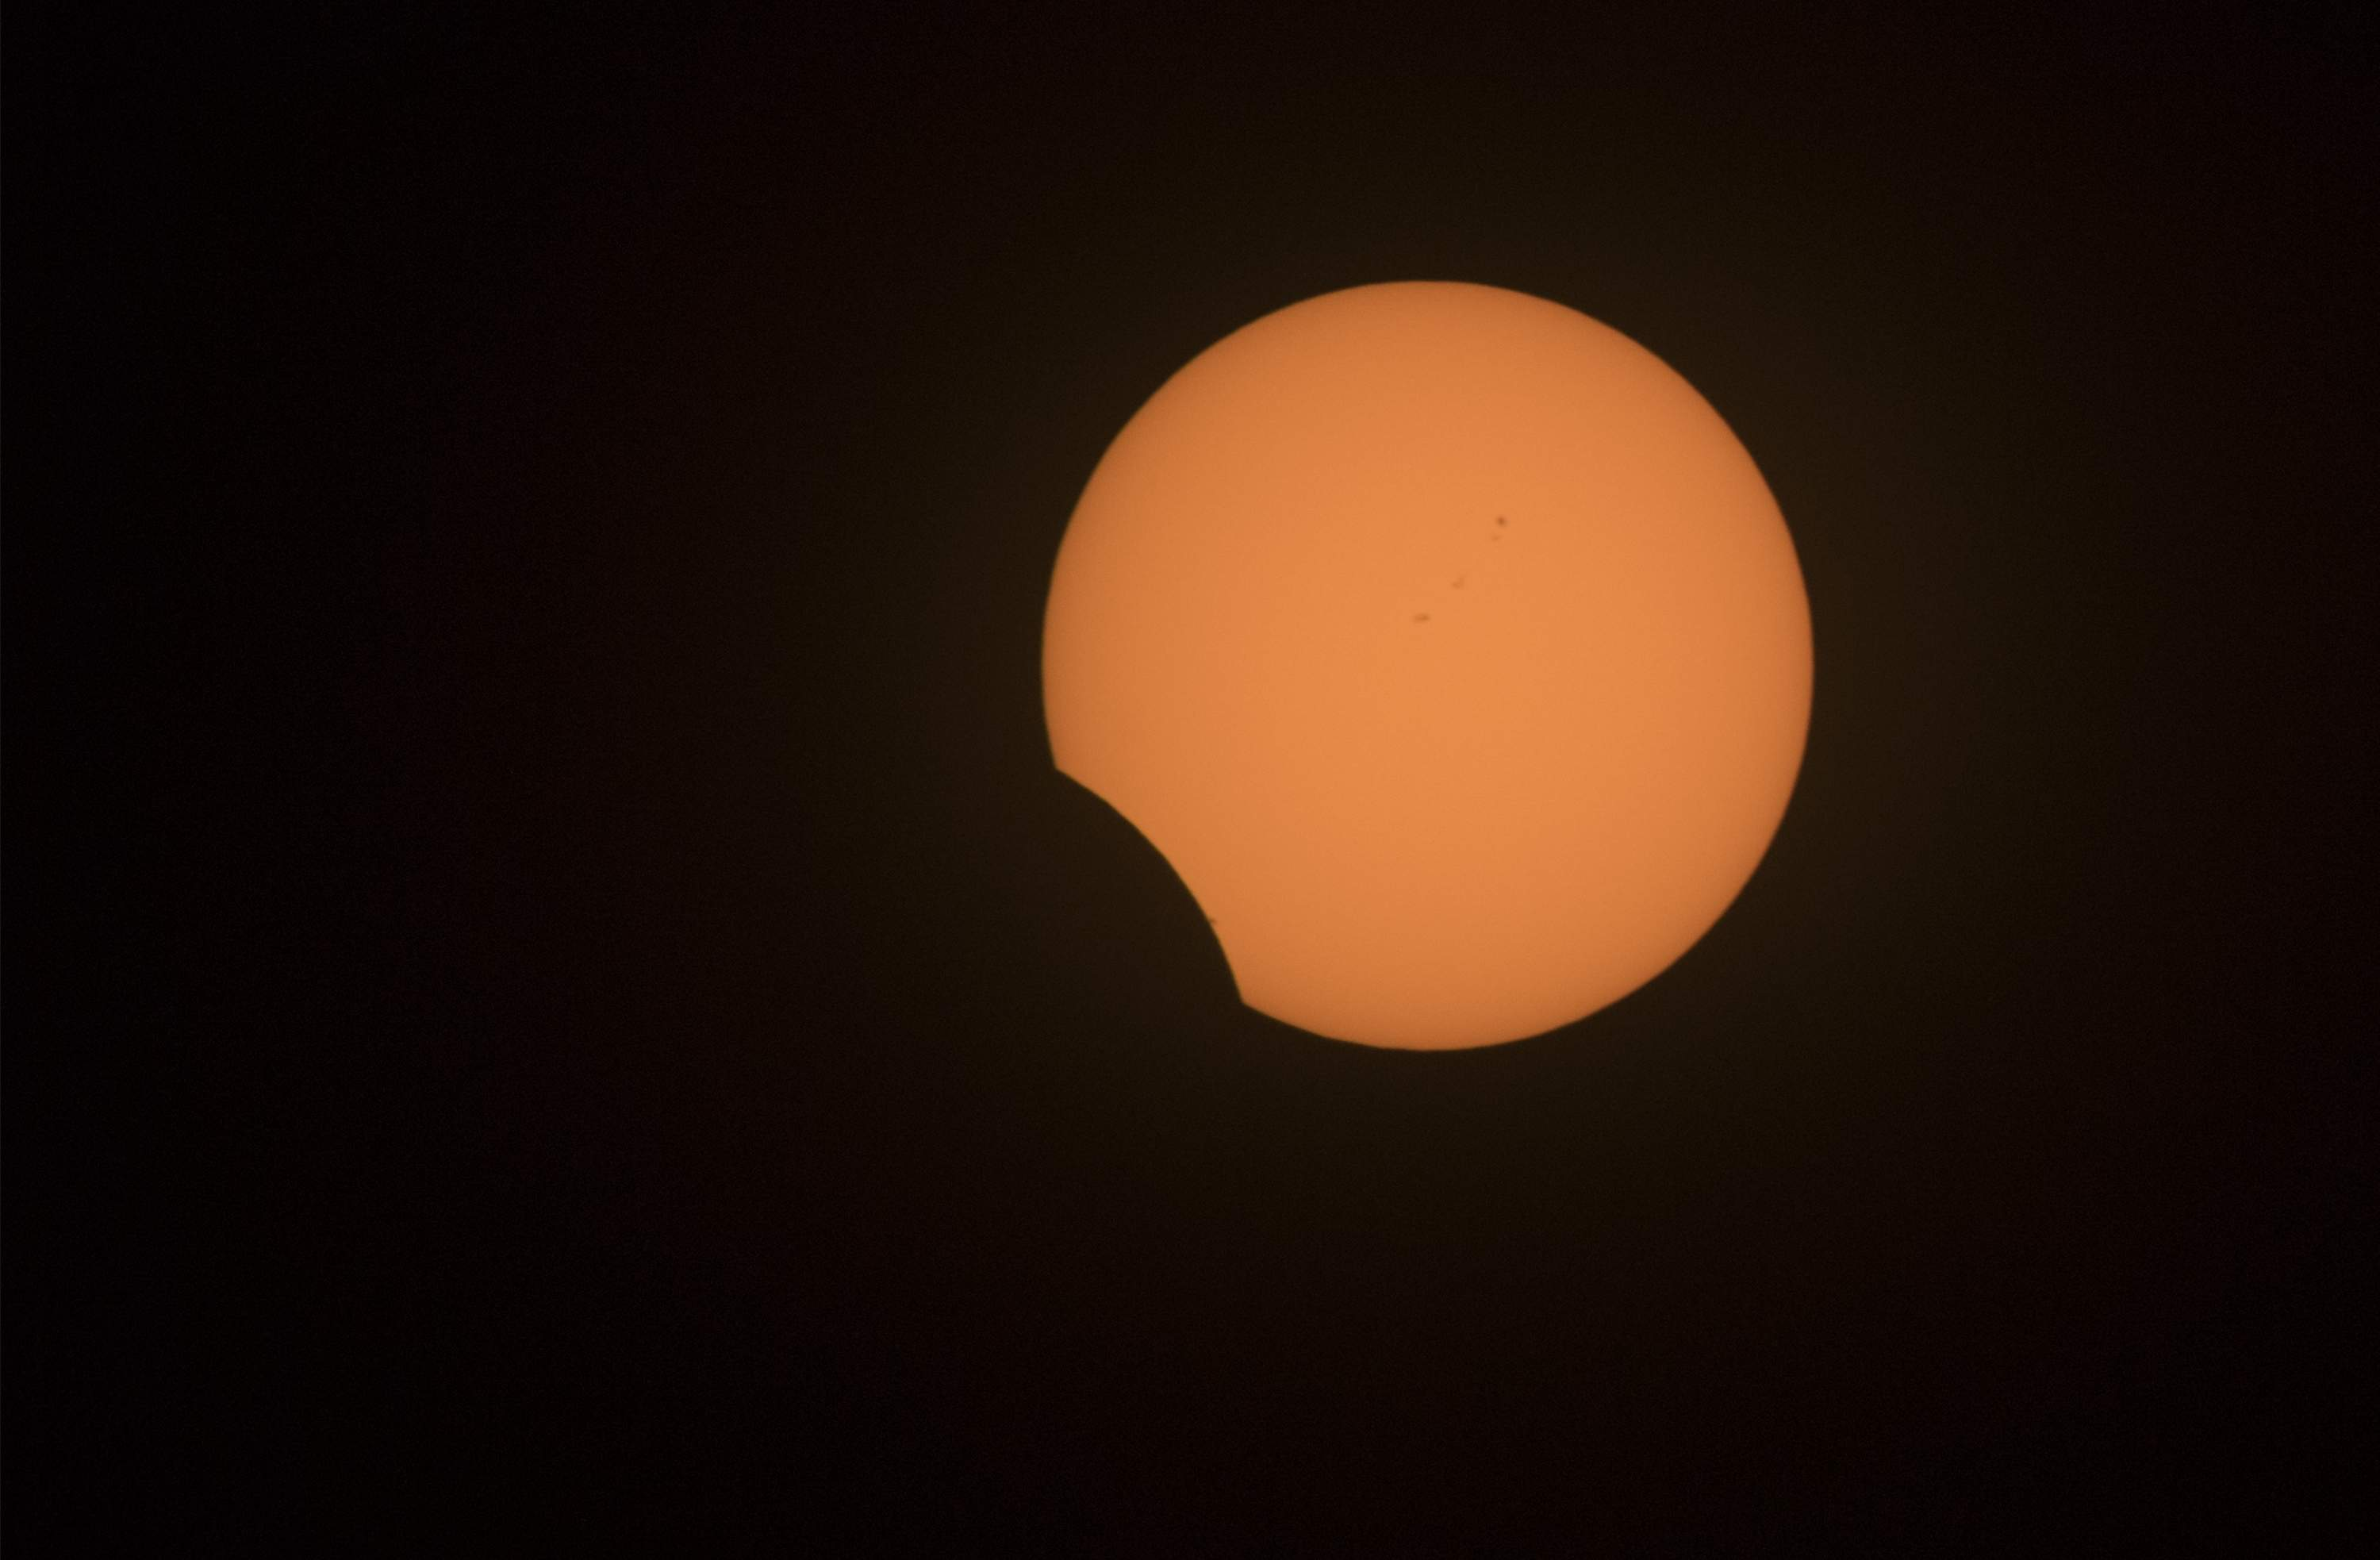 The partial solar eclipse is nearly finished at about 11:30 a.m. in Stockton. [CLIFFORD OTO/THE RECORD]